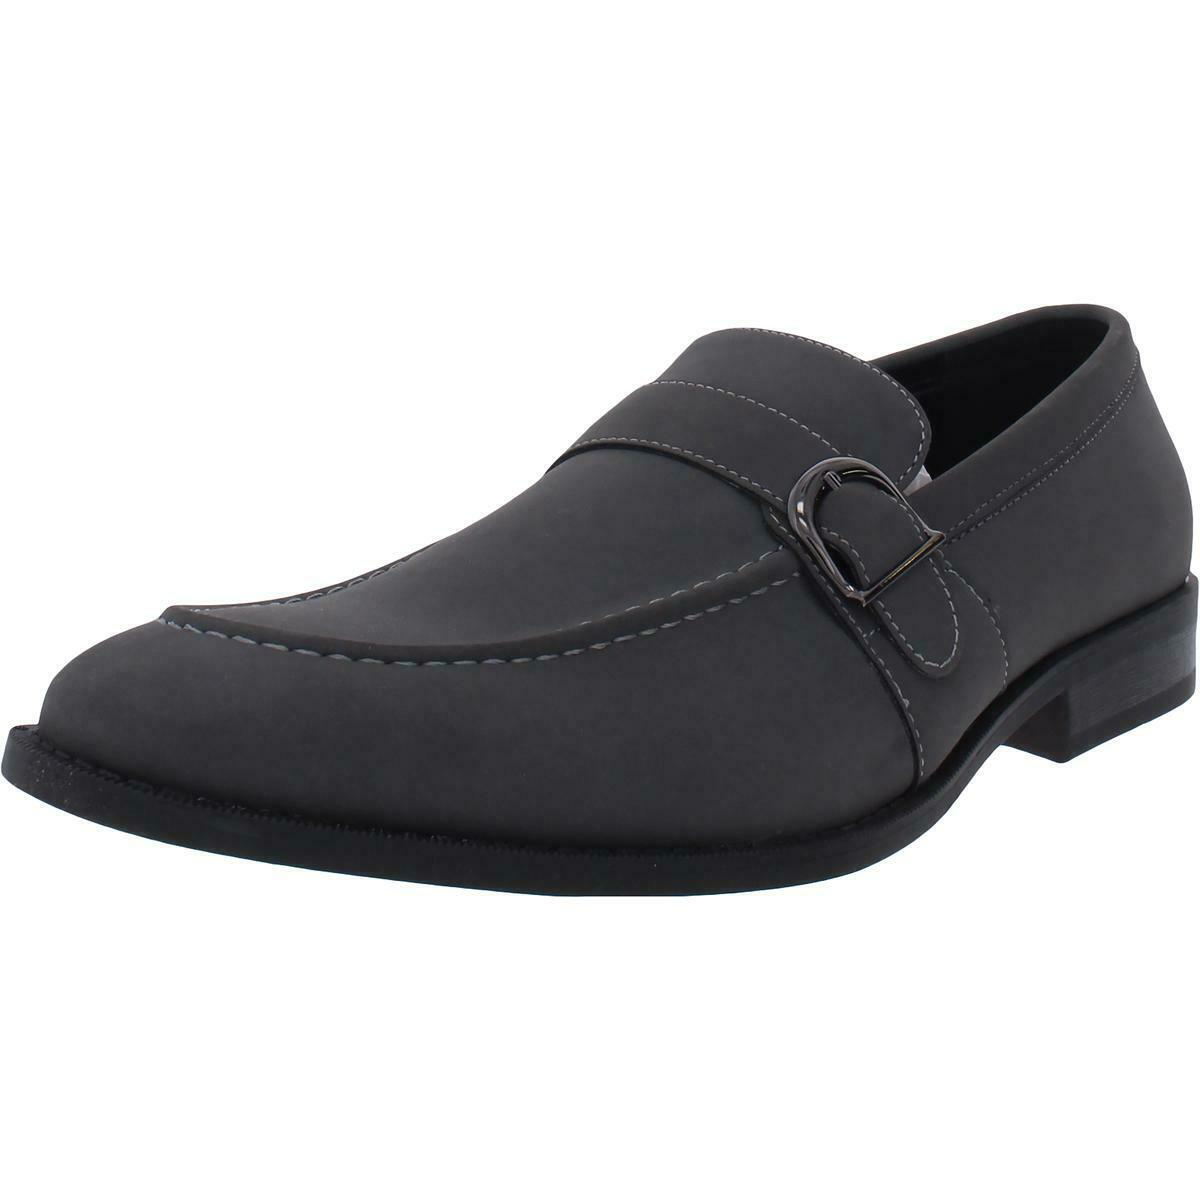 Unlisted Kenneth Cole Mens Half Time Show Gray Loafers 10 Medium (D) BHFO 8926